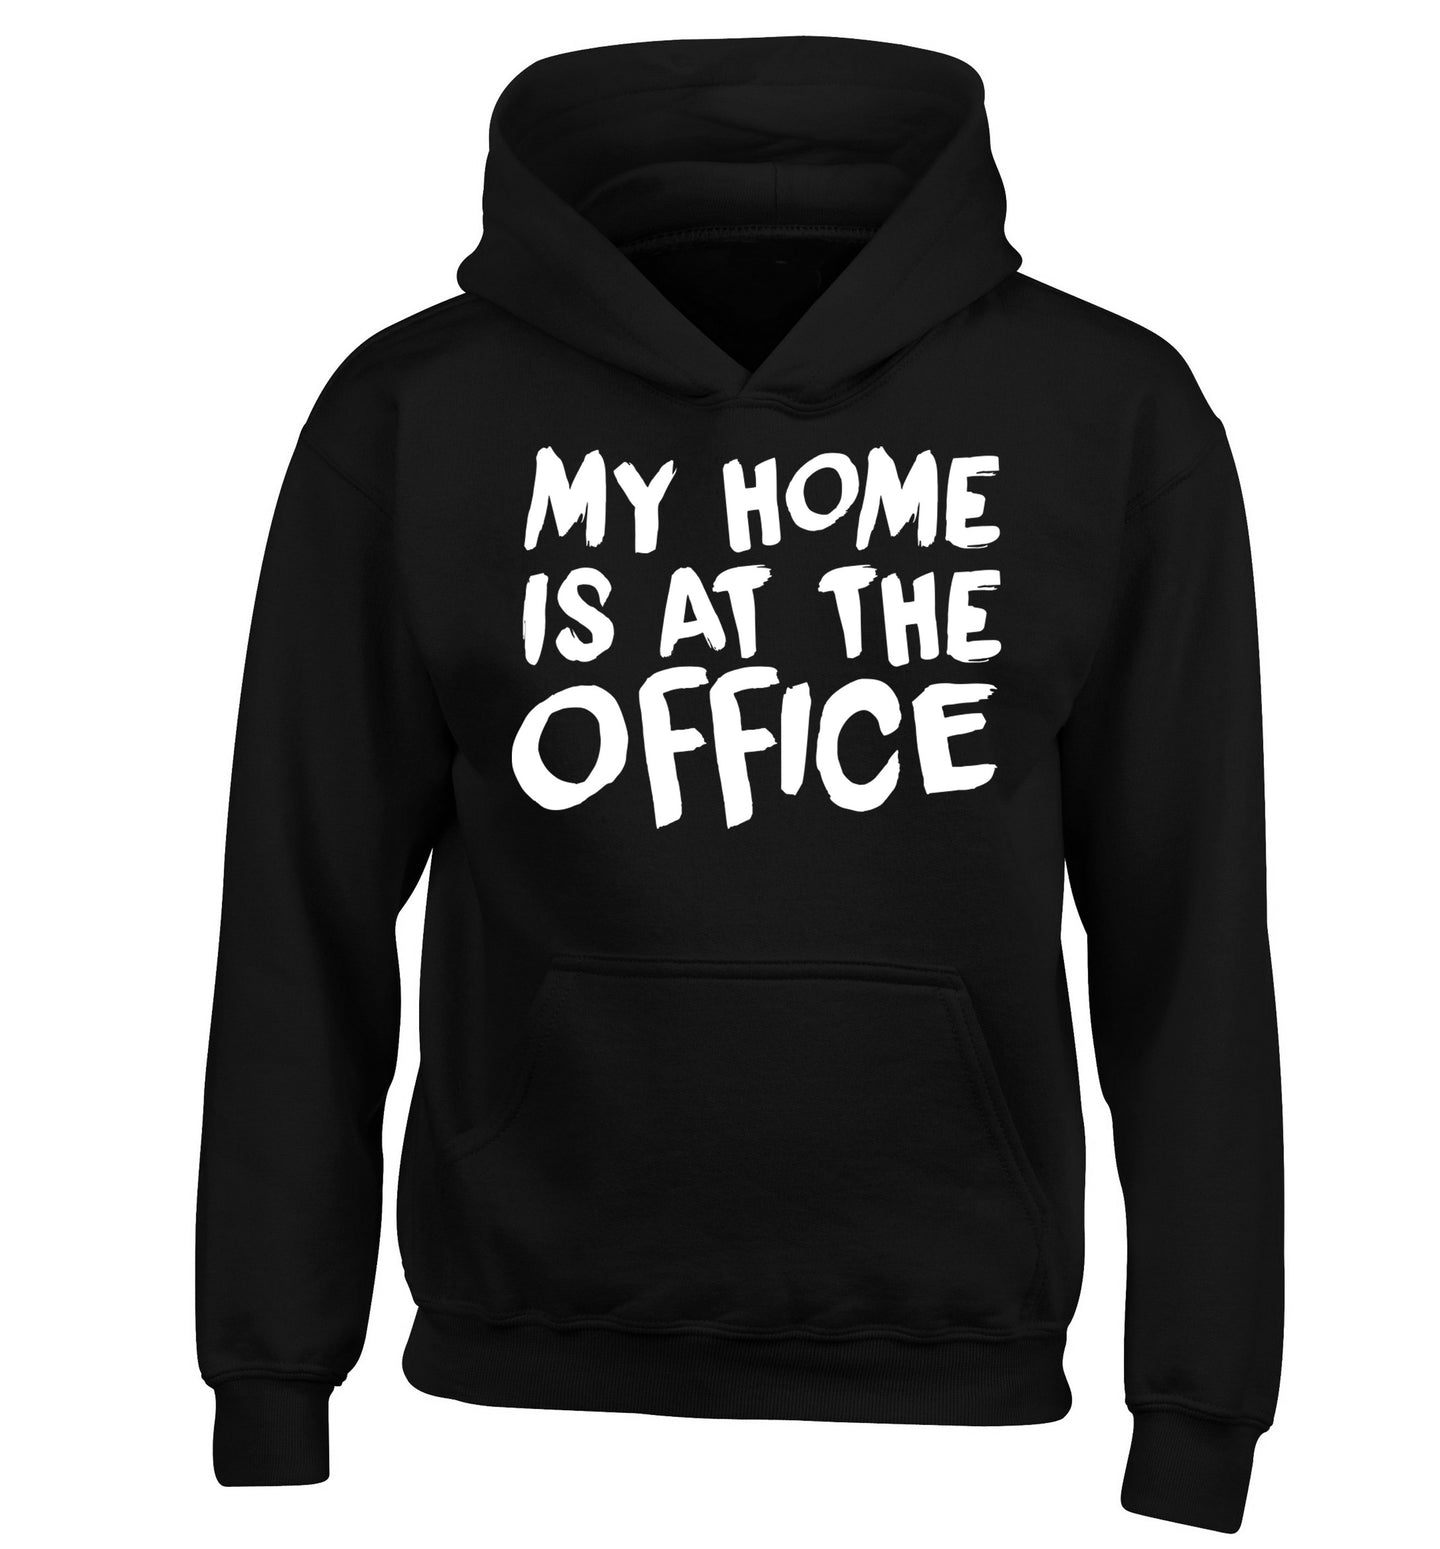 My home is at the office children's black hoodie 12-14 Years